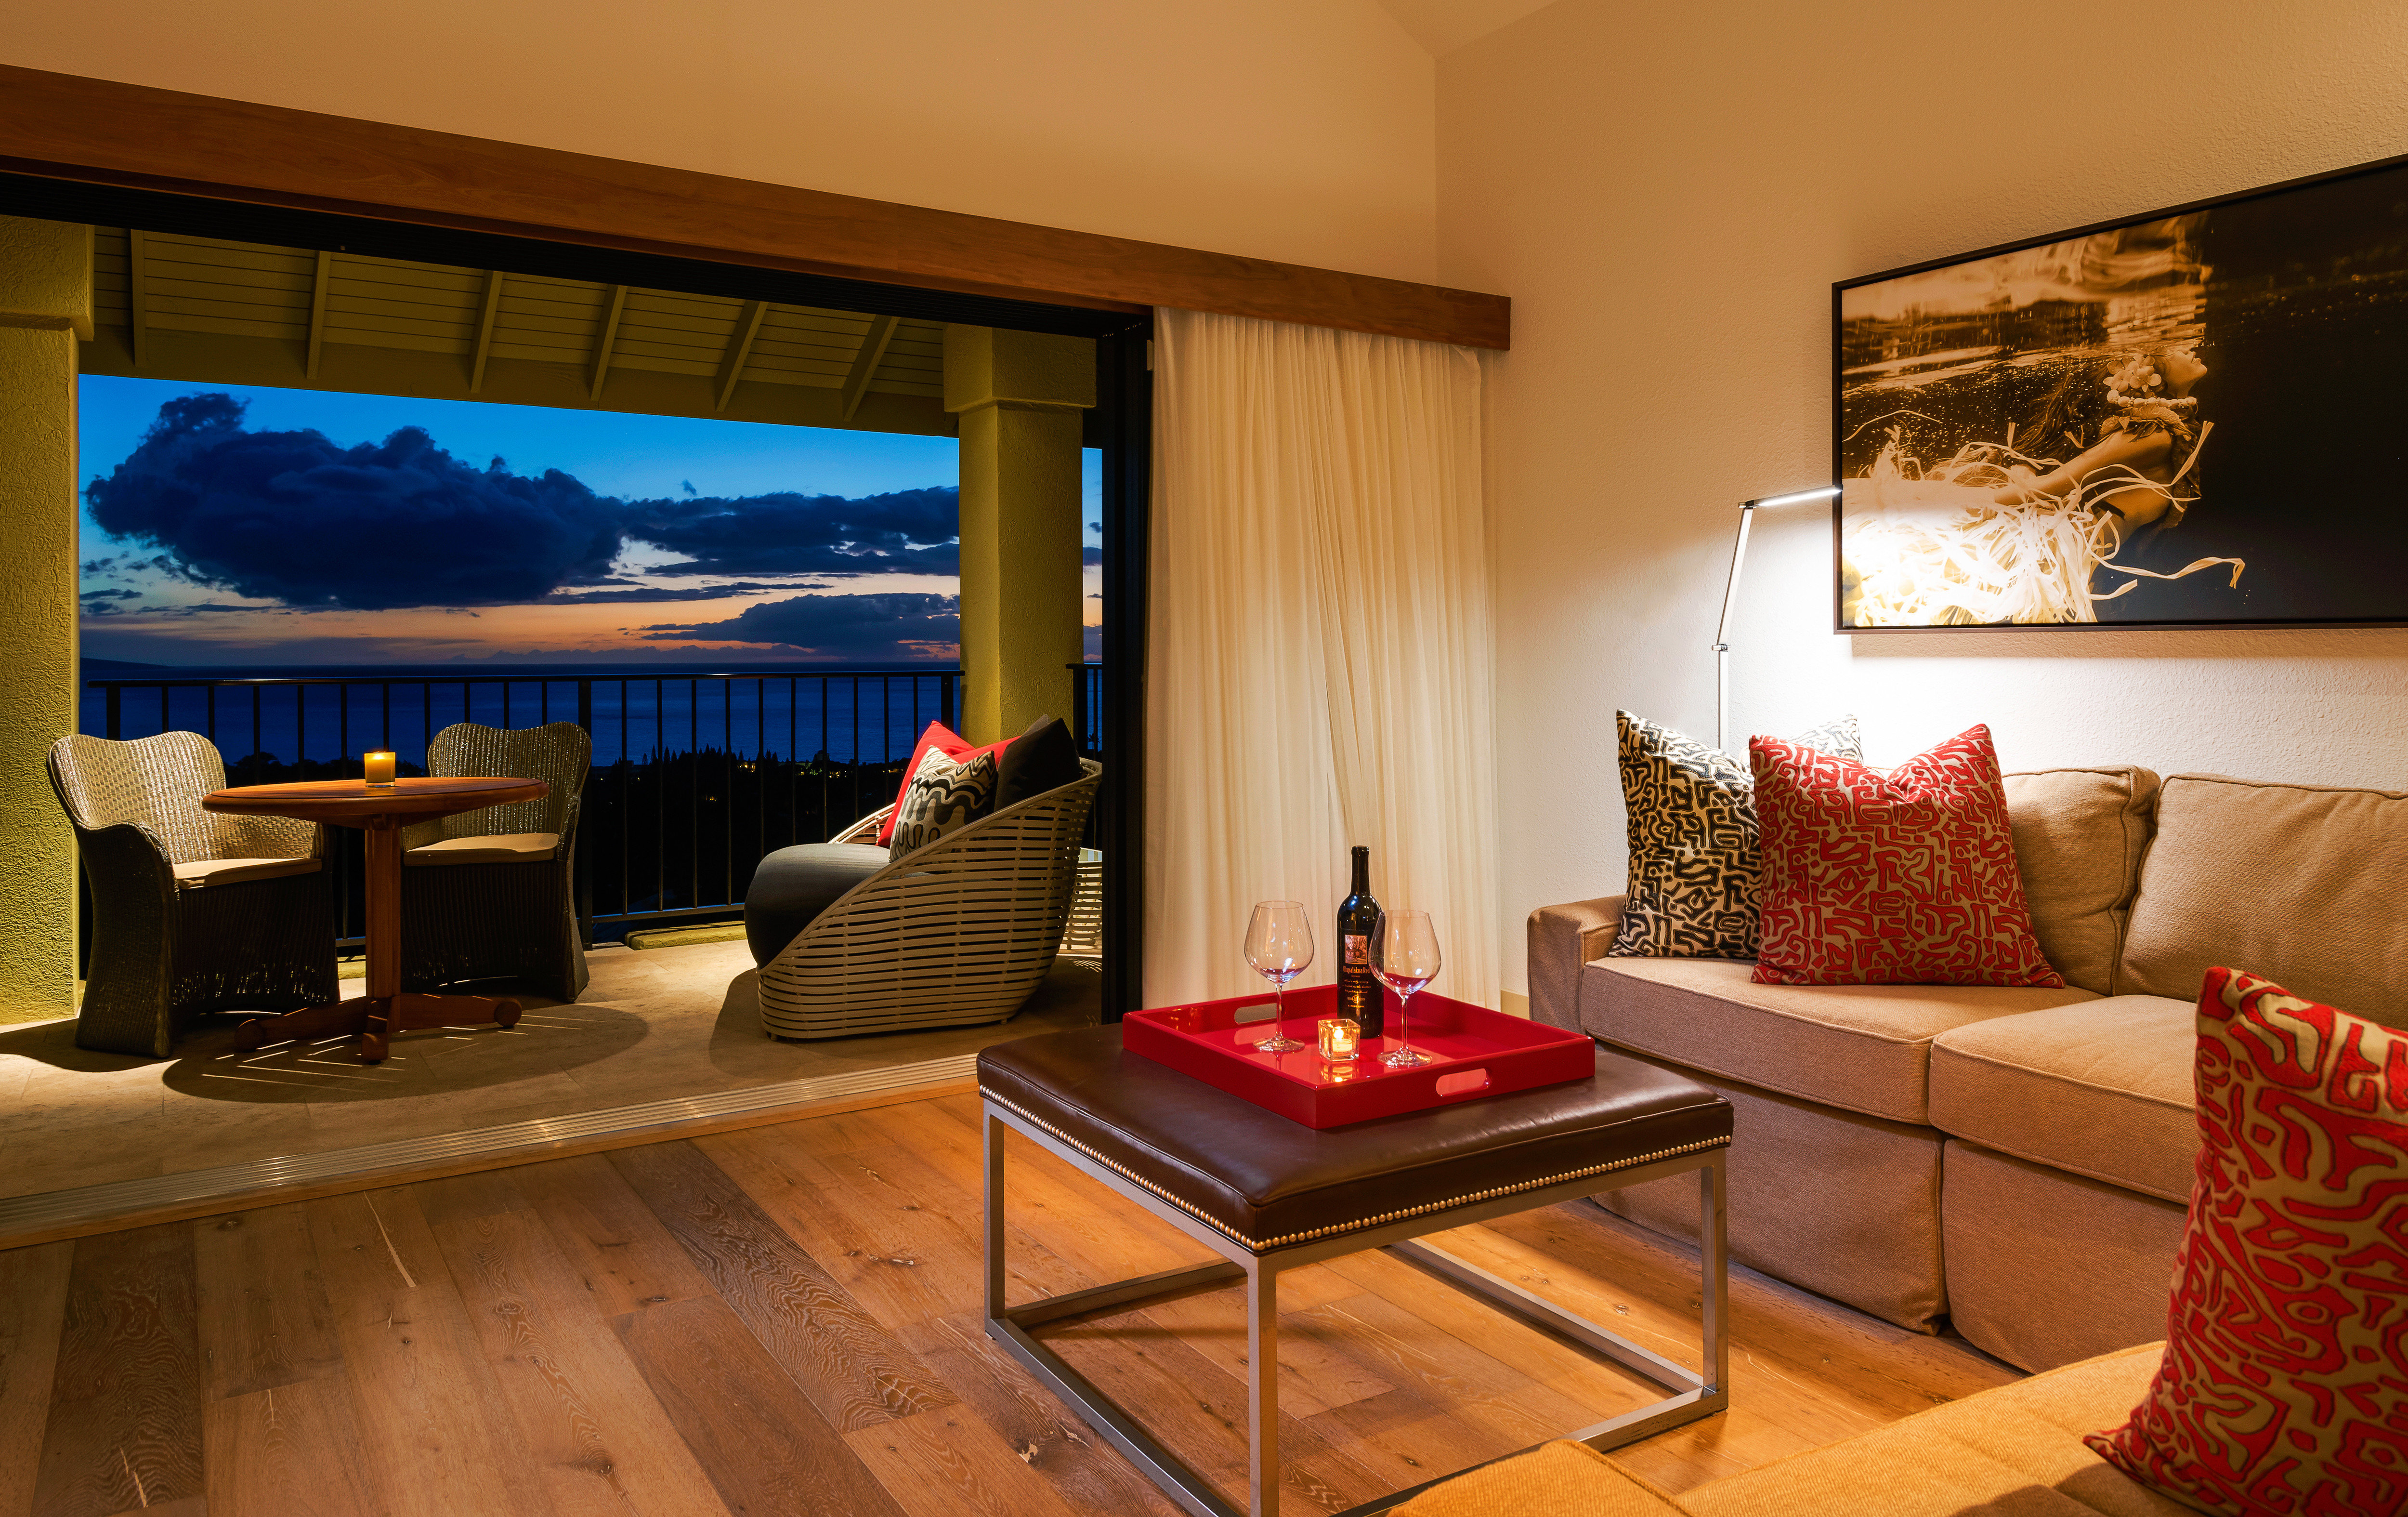 Balcony Classic Drink Hotels Island Living Romance Scenic views Sunset indoor wall floor room property living room Suite estate interior design home Villa real estate Resort Design condominium cottage apartment furniture flat